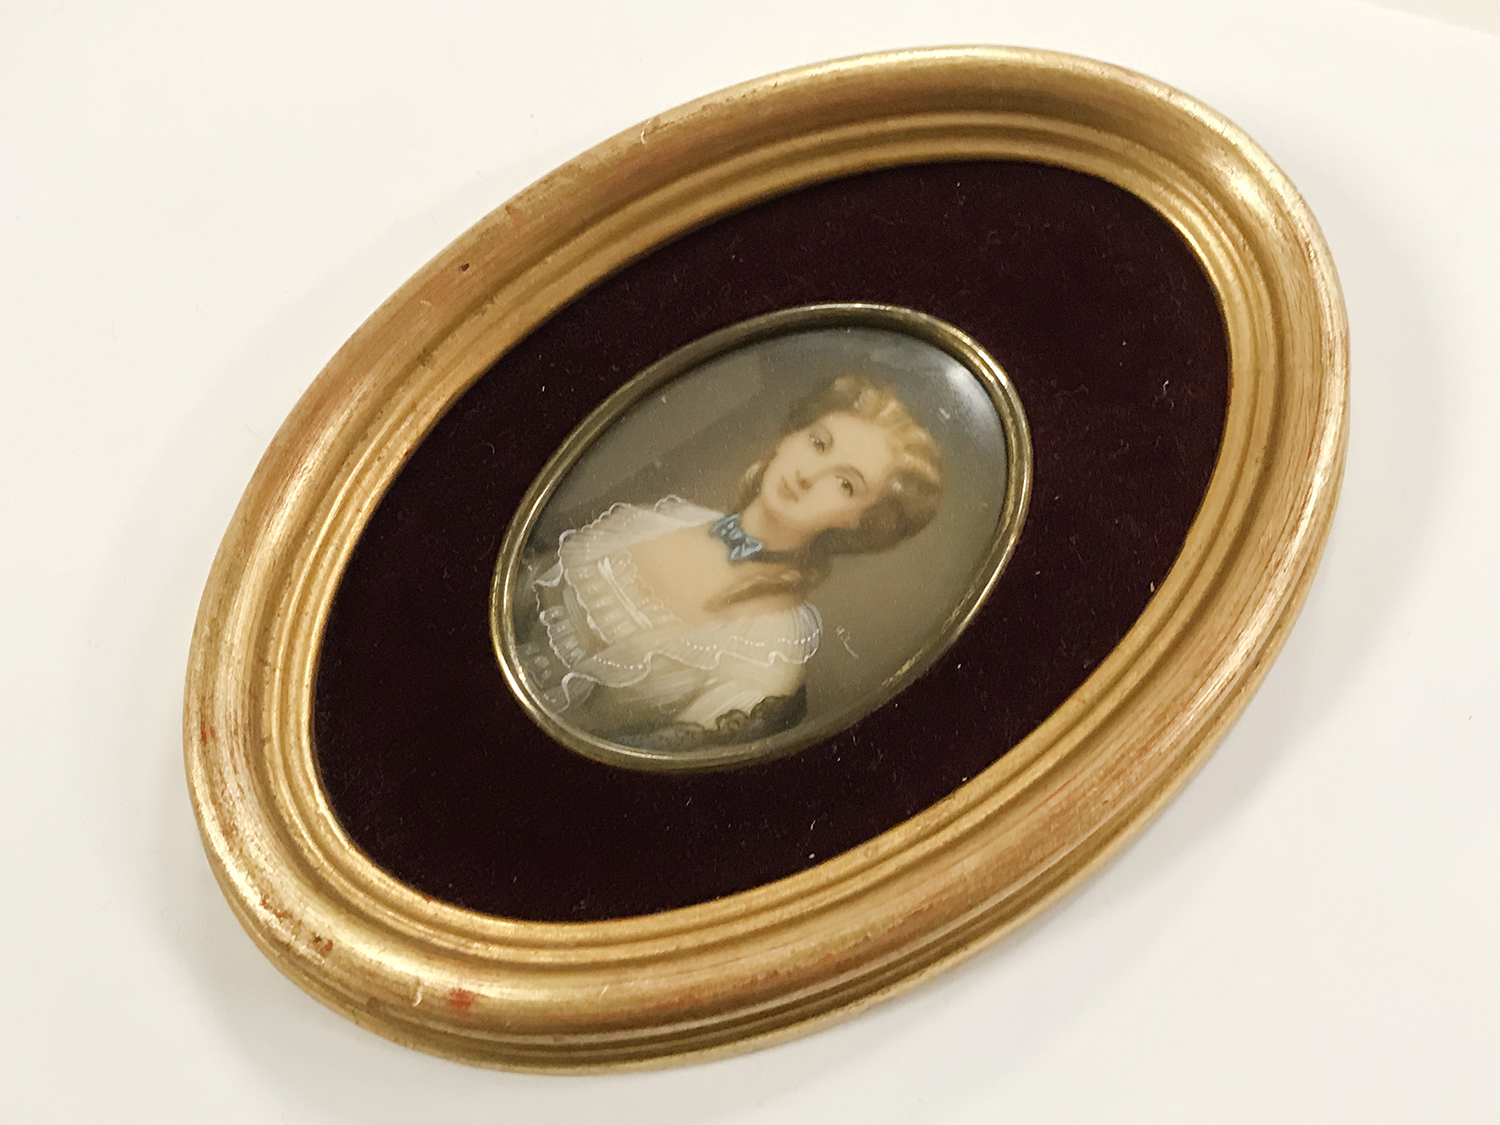 TWO FRAMED 20THC PORTRAIT MINIATURES - Image 2 of 3